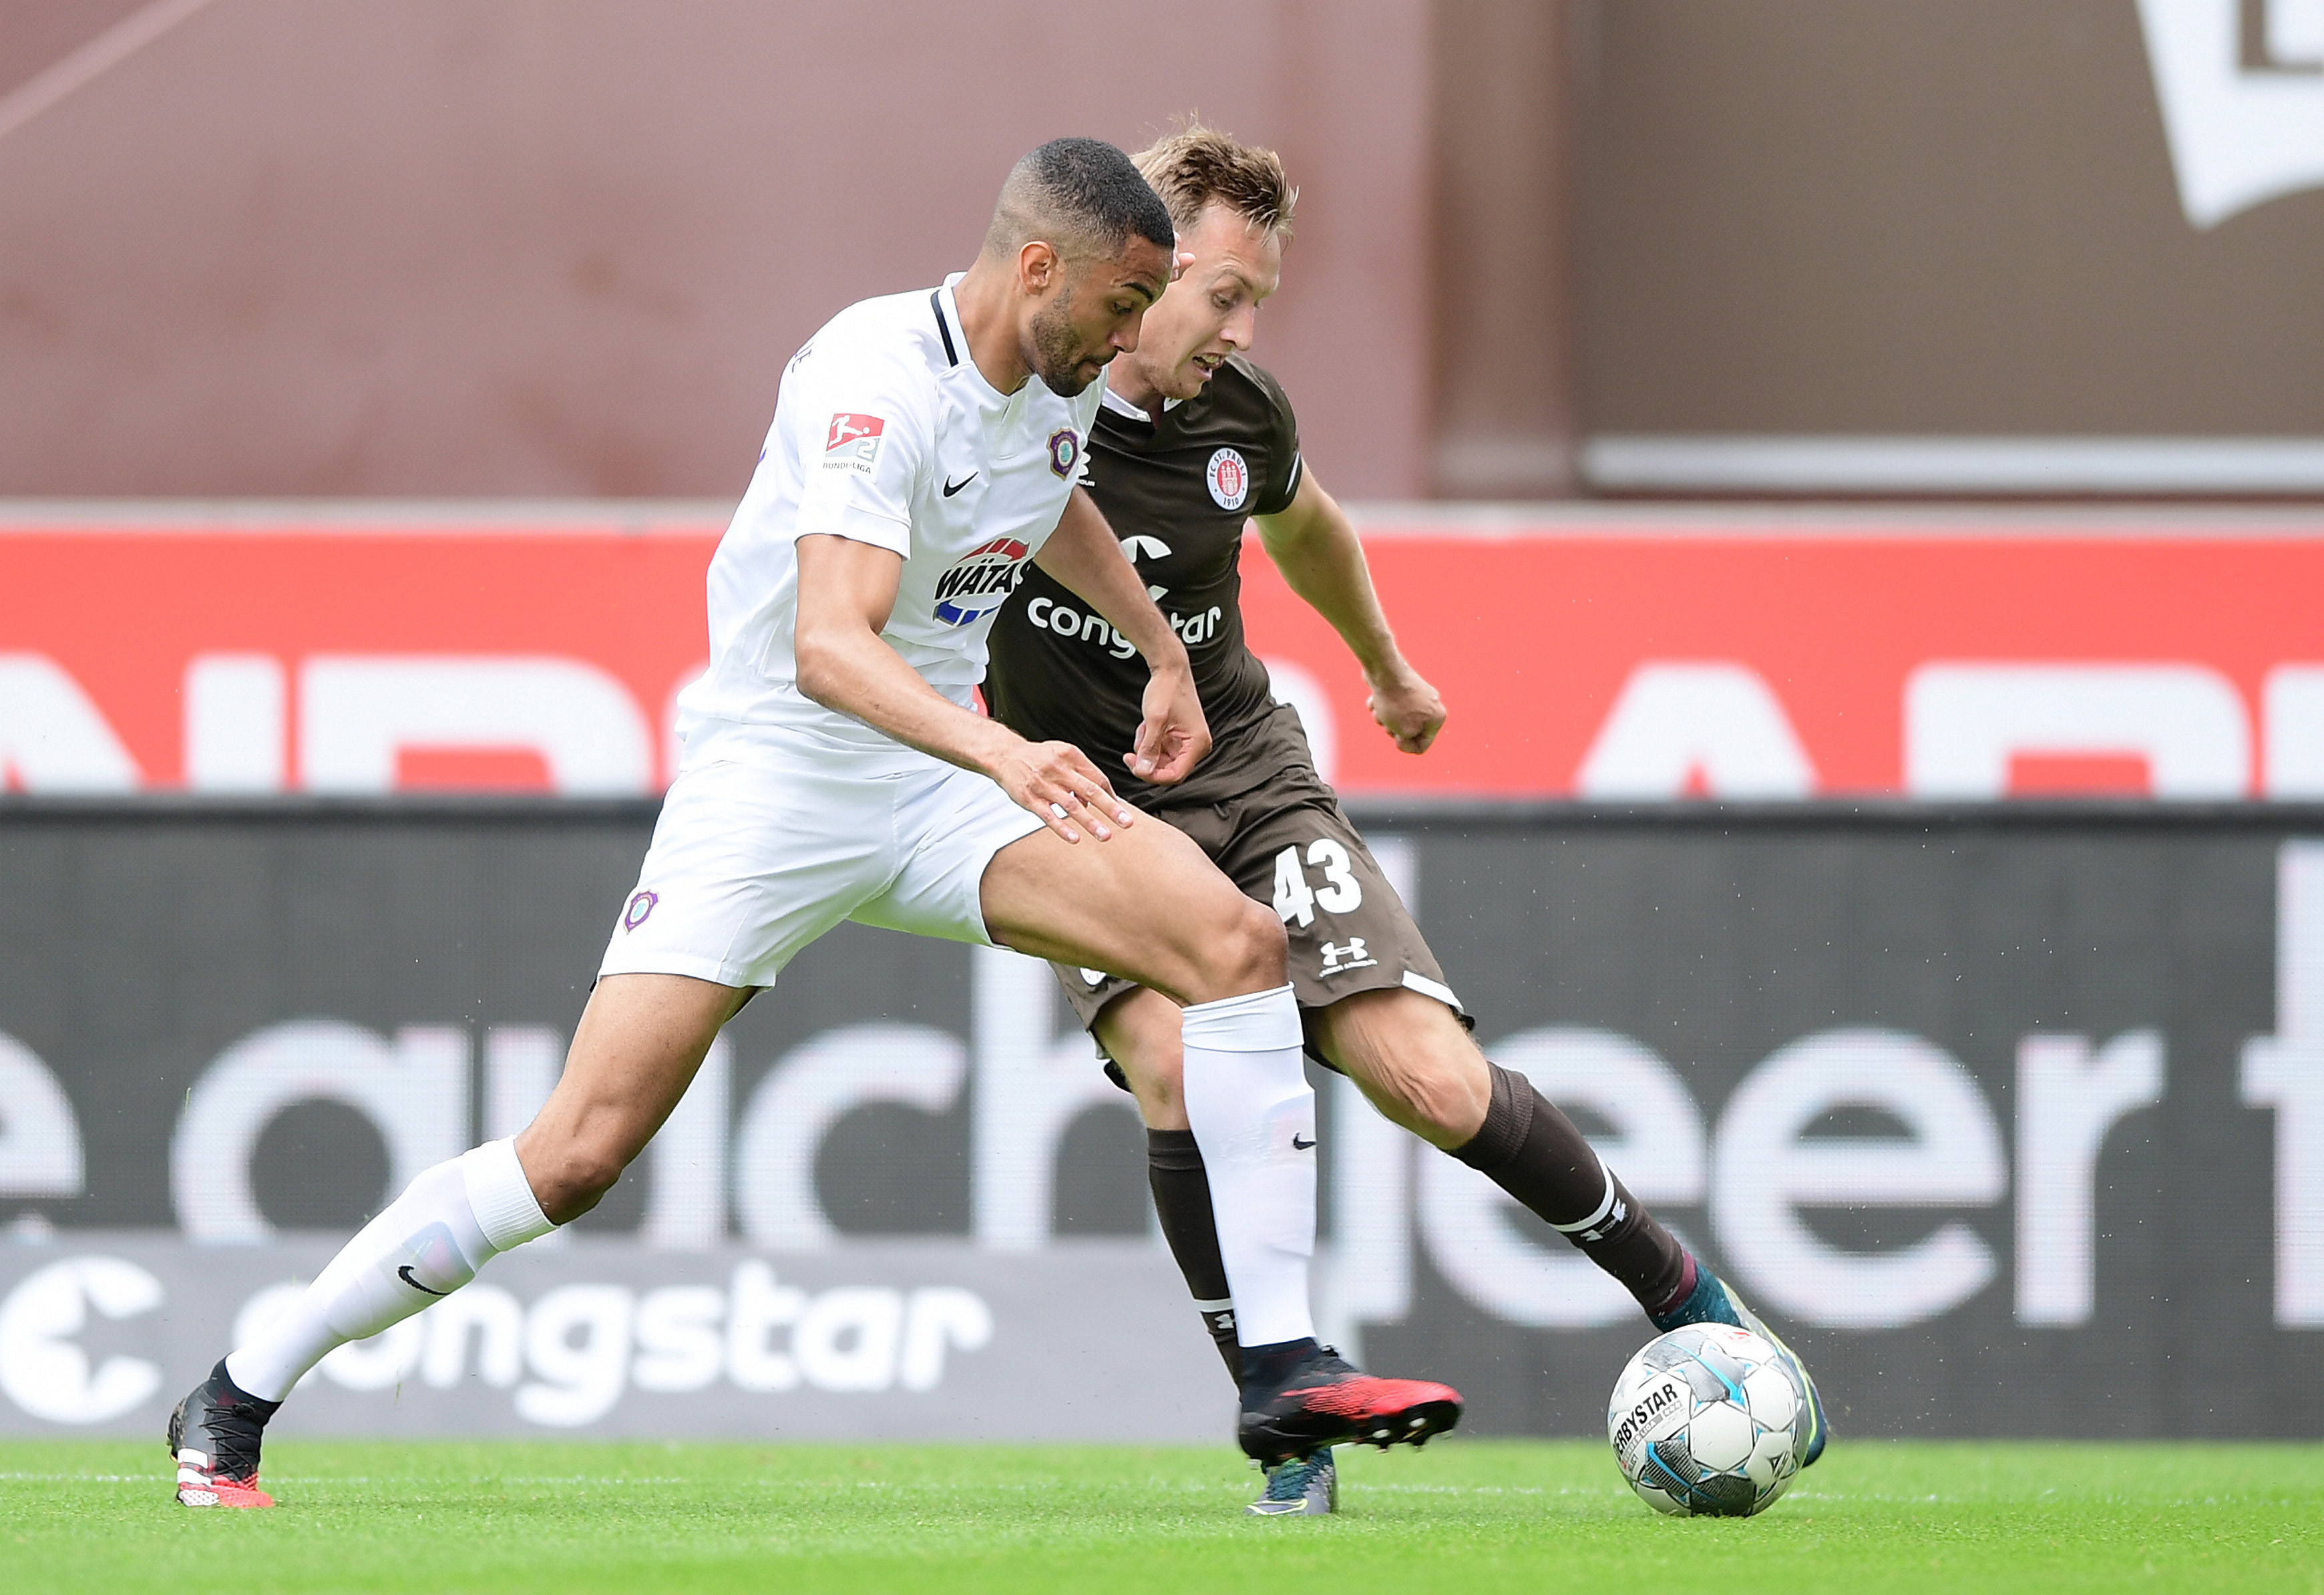 In the 2-1 home defeat of Erzgebirge Aue, Sebastian Ohlsson, seen here under challenge from Malcolm Cacutalua, made the opening goal for Dimitrios Diamantakos. It was his only assist last season.